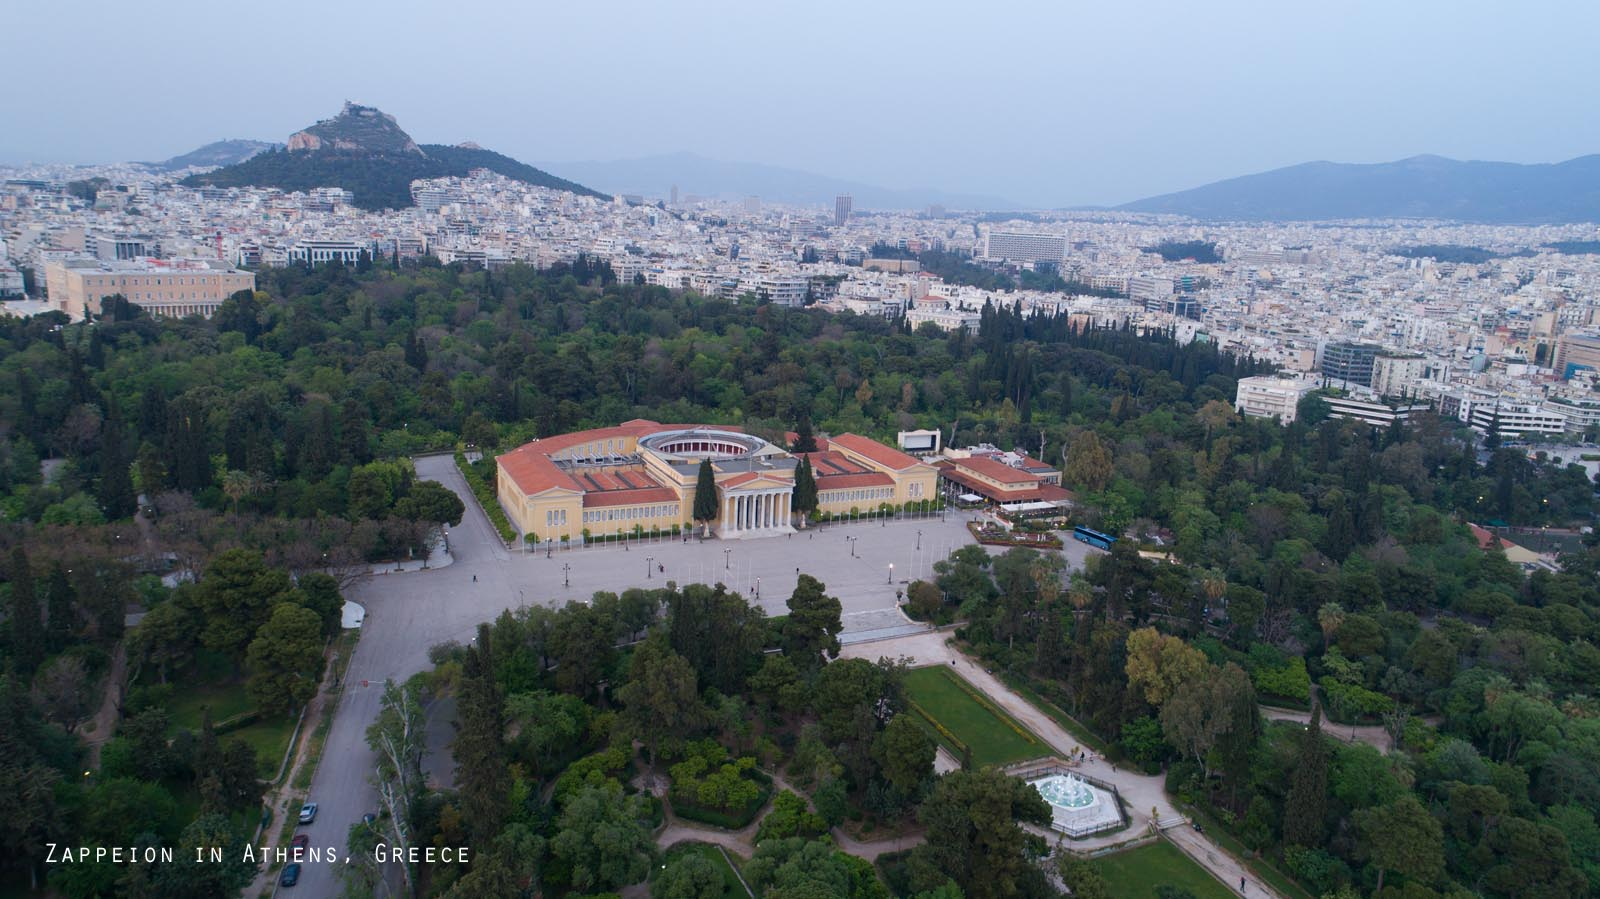 Enlarged - Zappeion in Athens, Greece